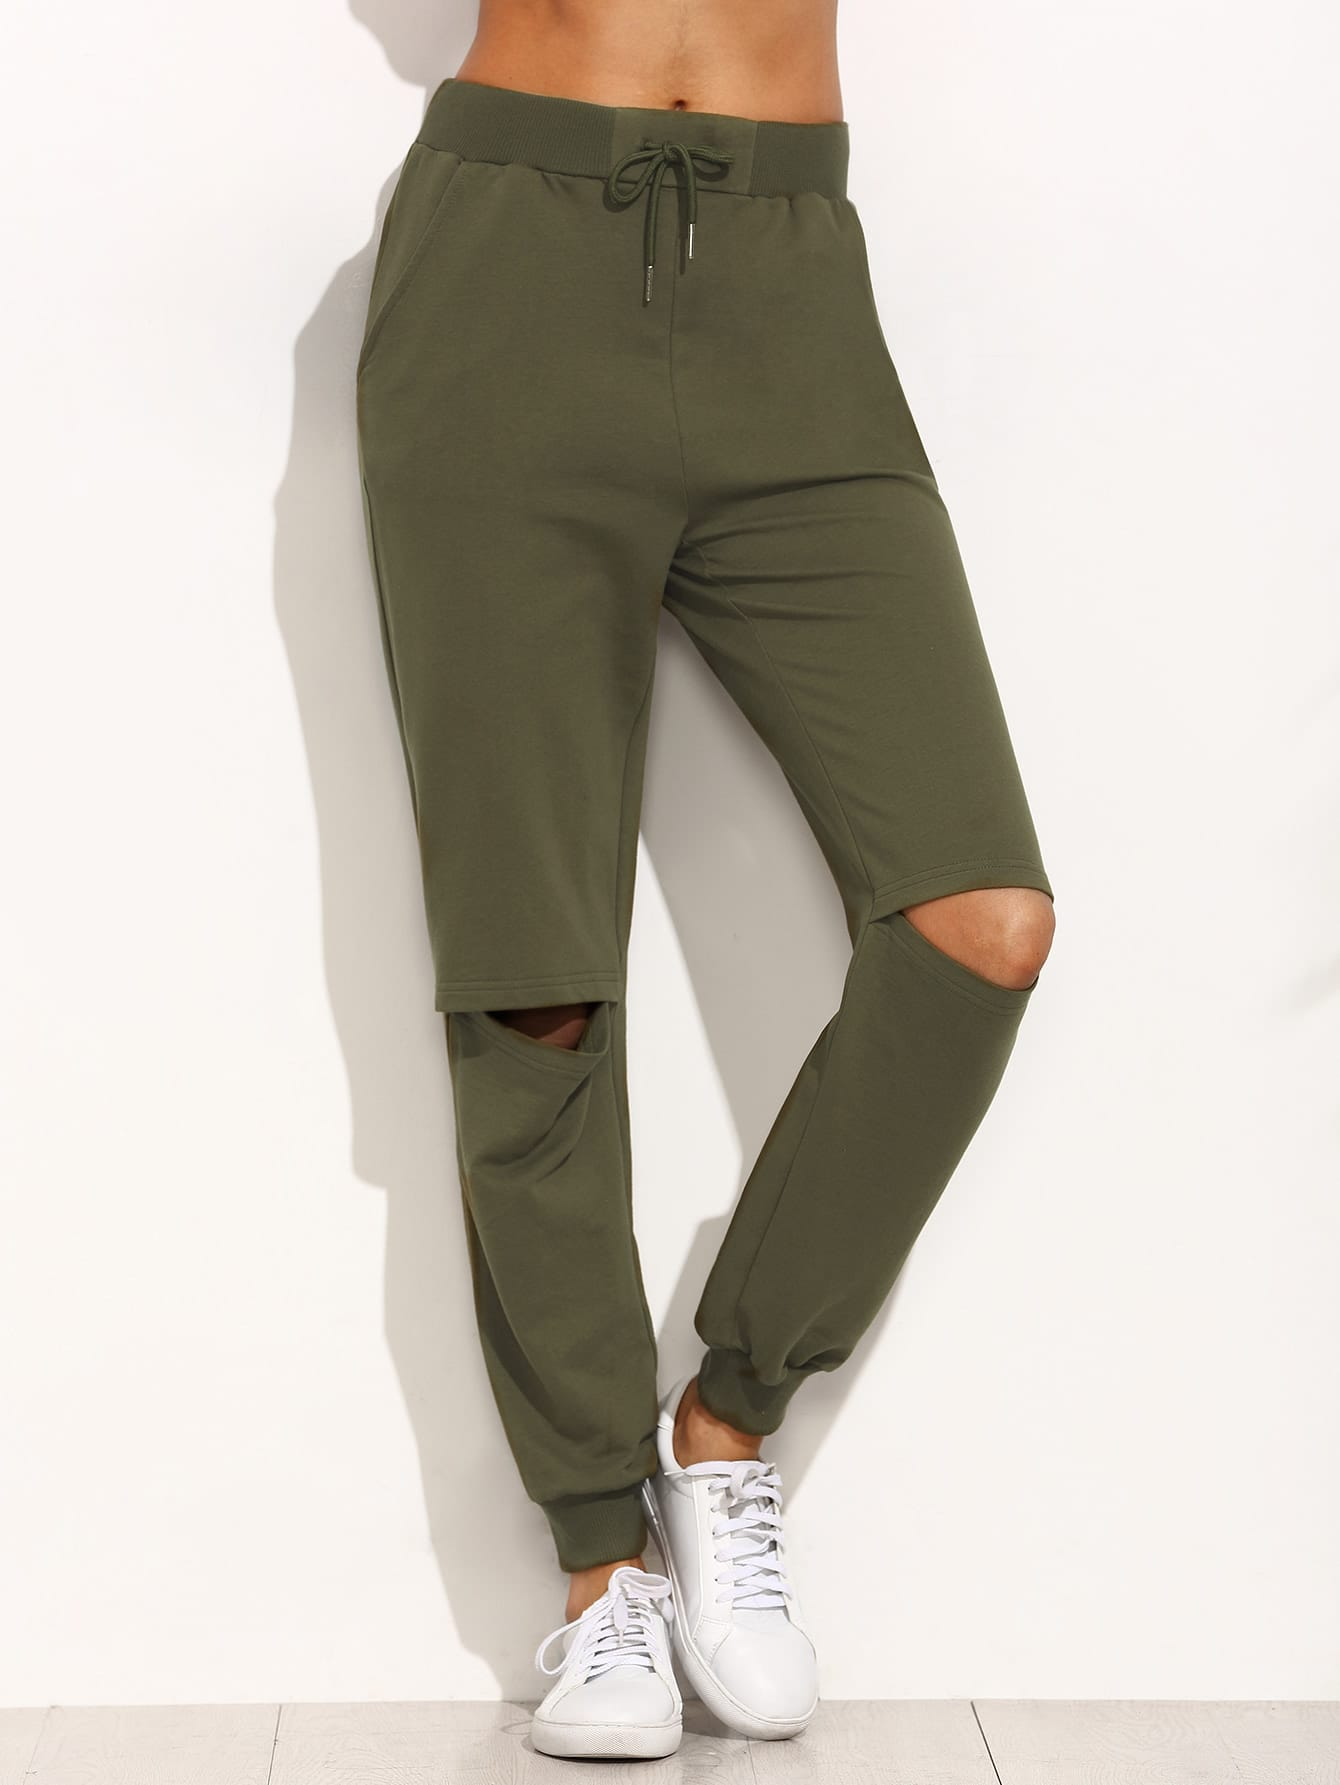 Buy Army Green Tie Cut Knee Long Pants